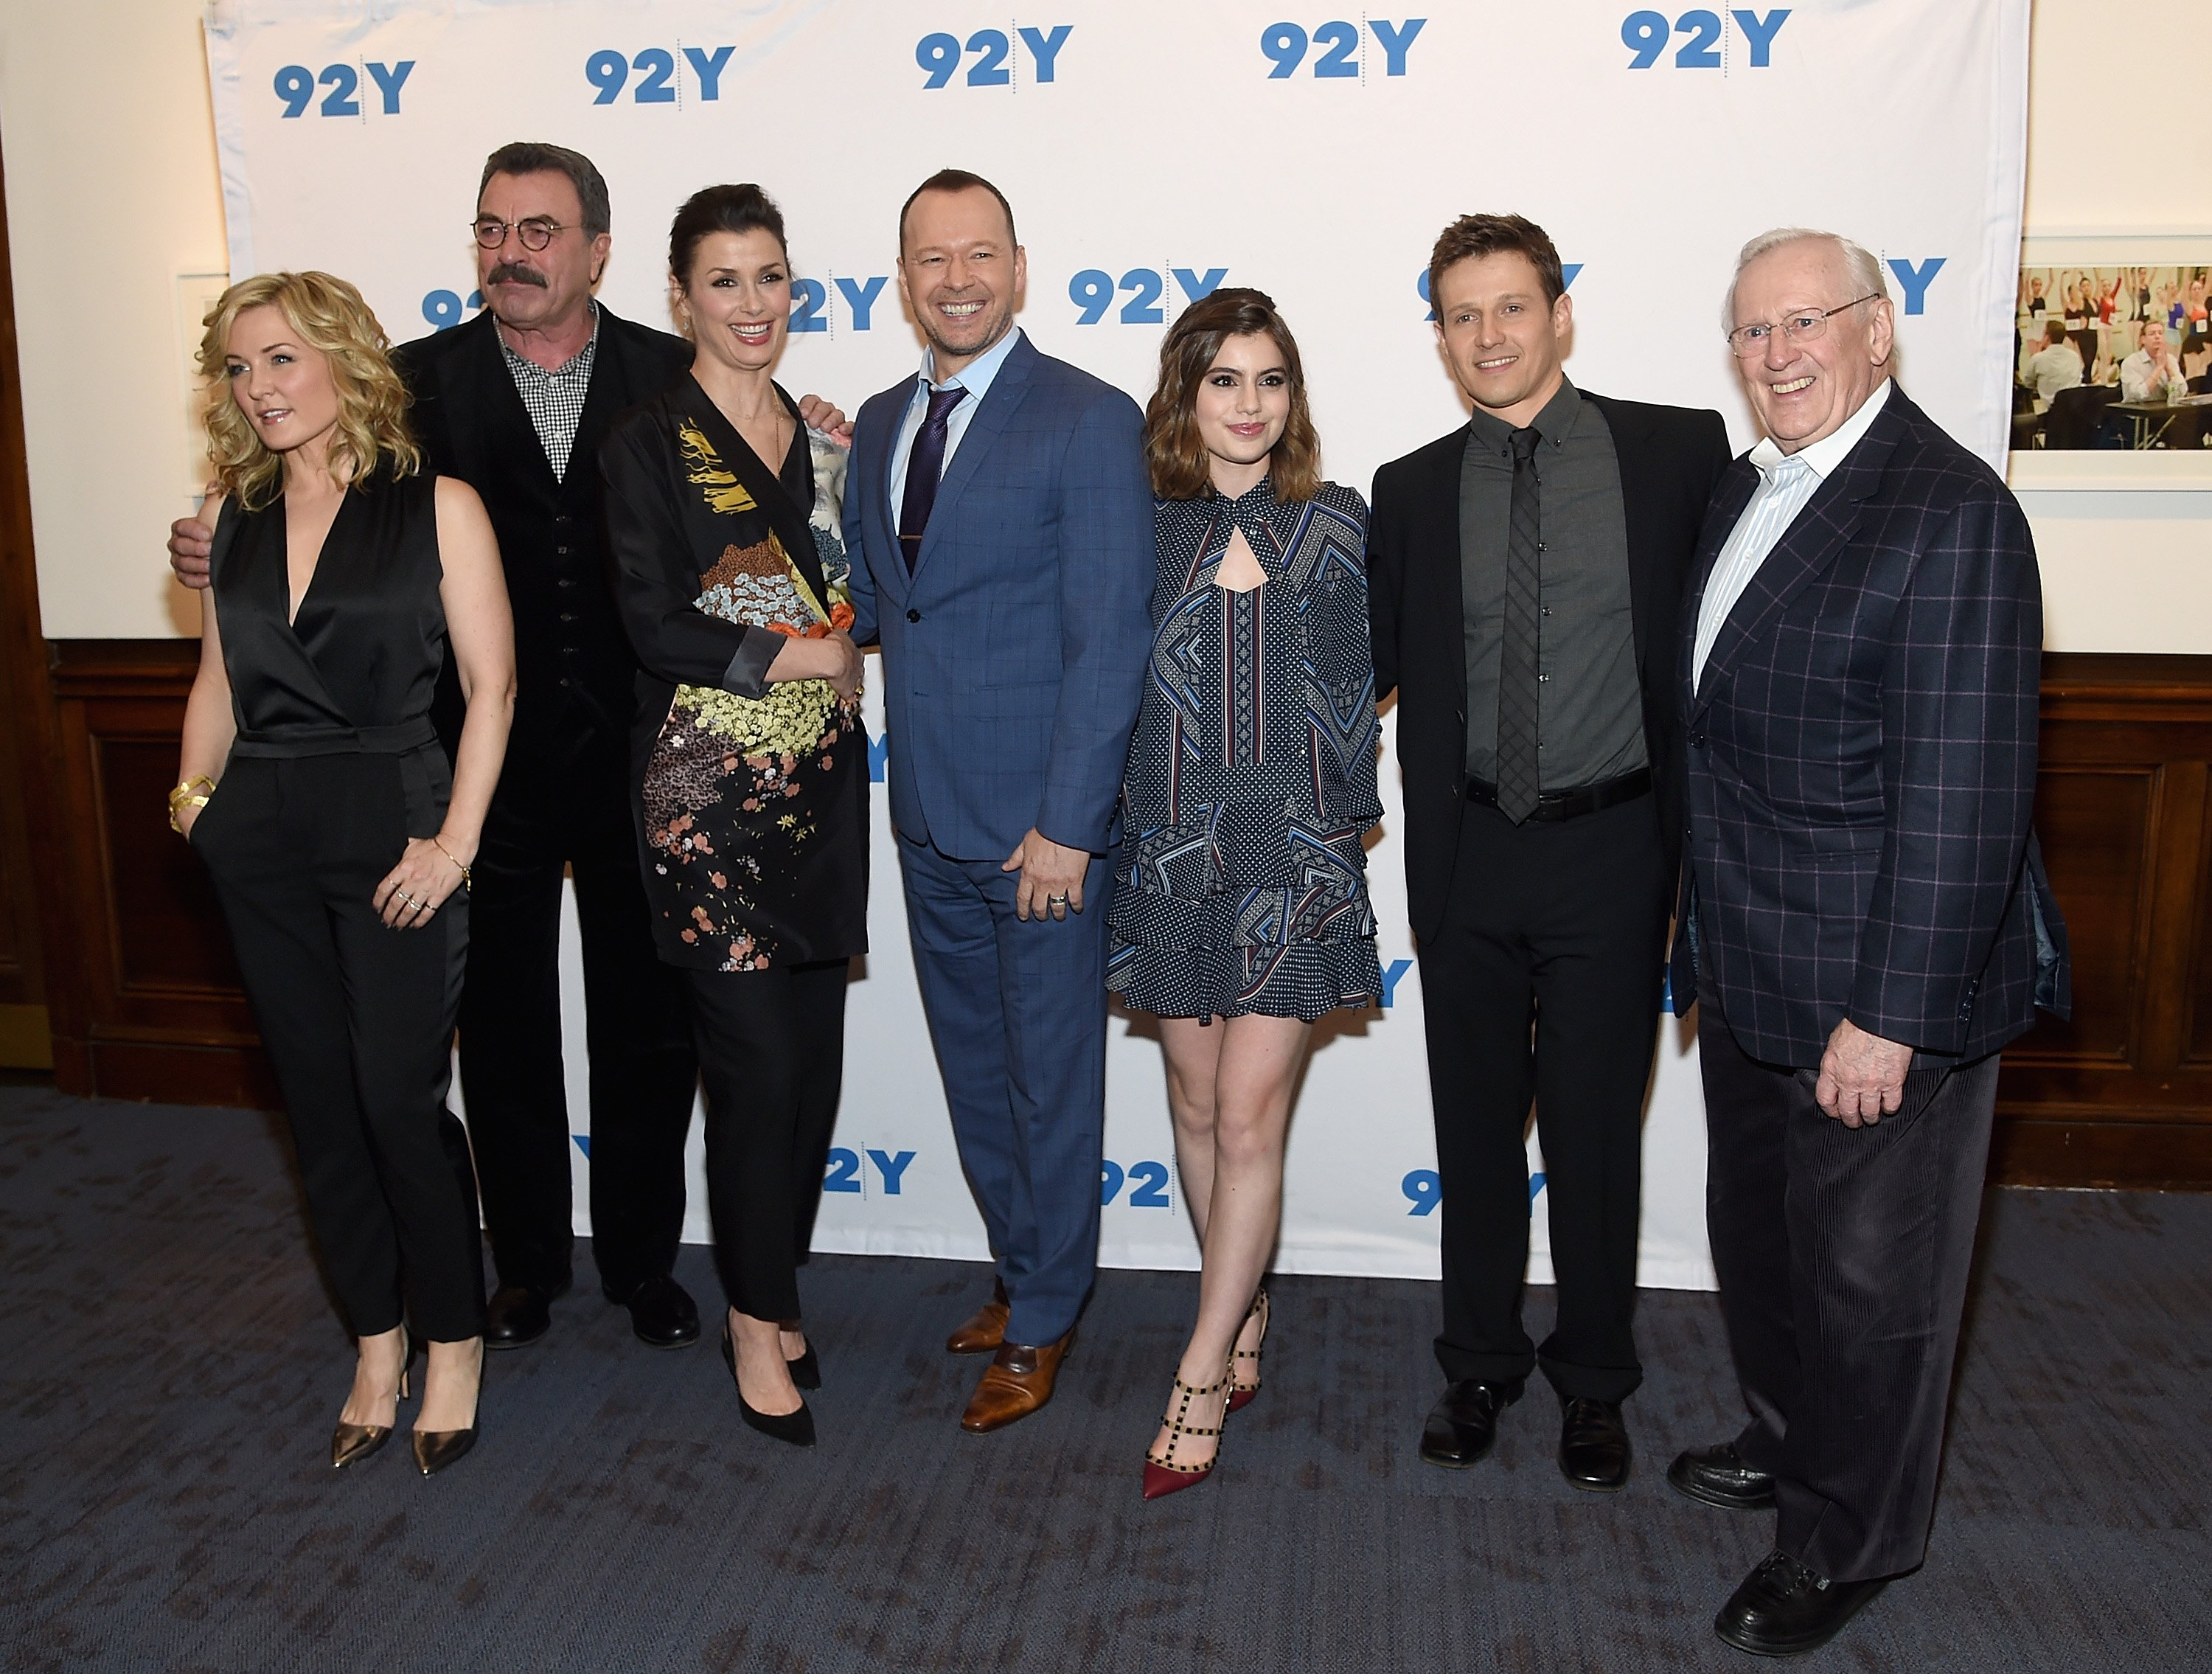 """Len Cariou stands at the end of the """"Blue Bloods"""" cast line at the 150th Episode Celebration in New York City on March 27, 2017 